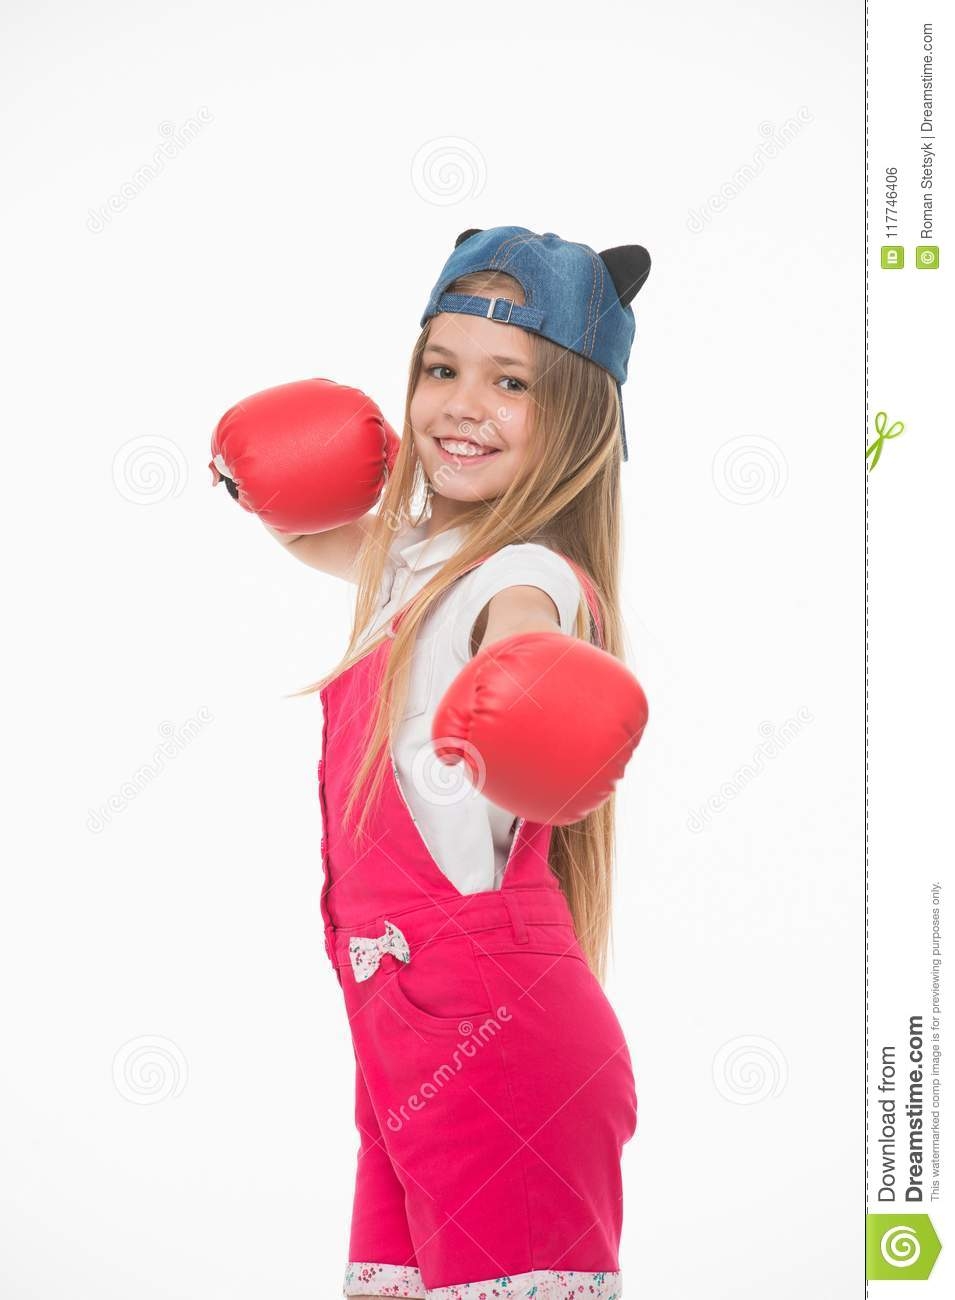 Happy girl in boxing gloves isolated on white. Little child smile before training or workout. Kid athlete in fashionable